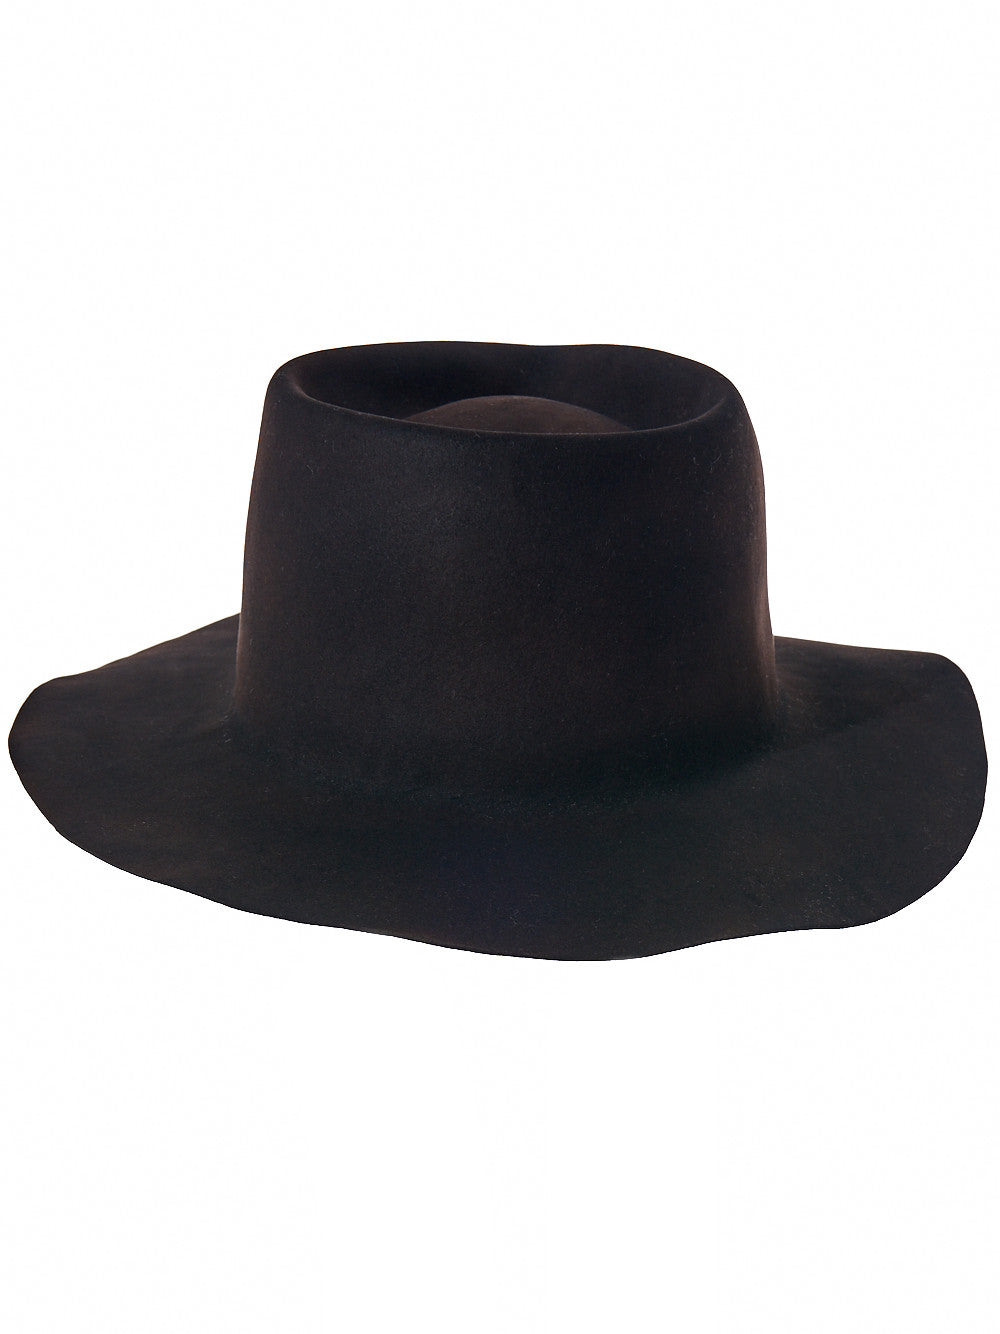 Washed Fedora (BHPTS007 EB BLACK) - H. Lorenzo